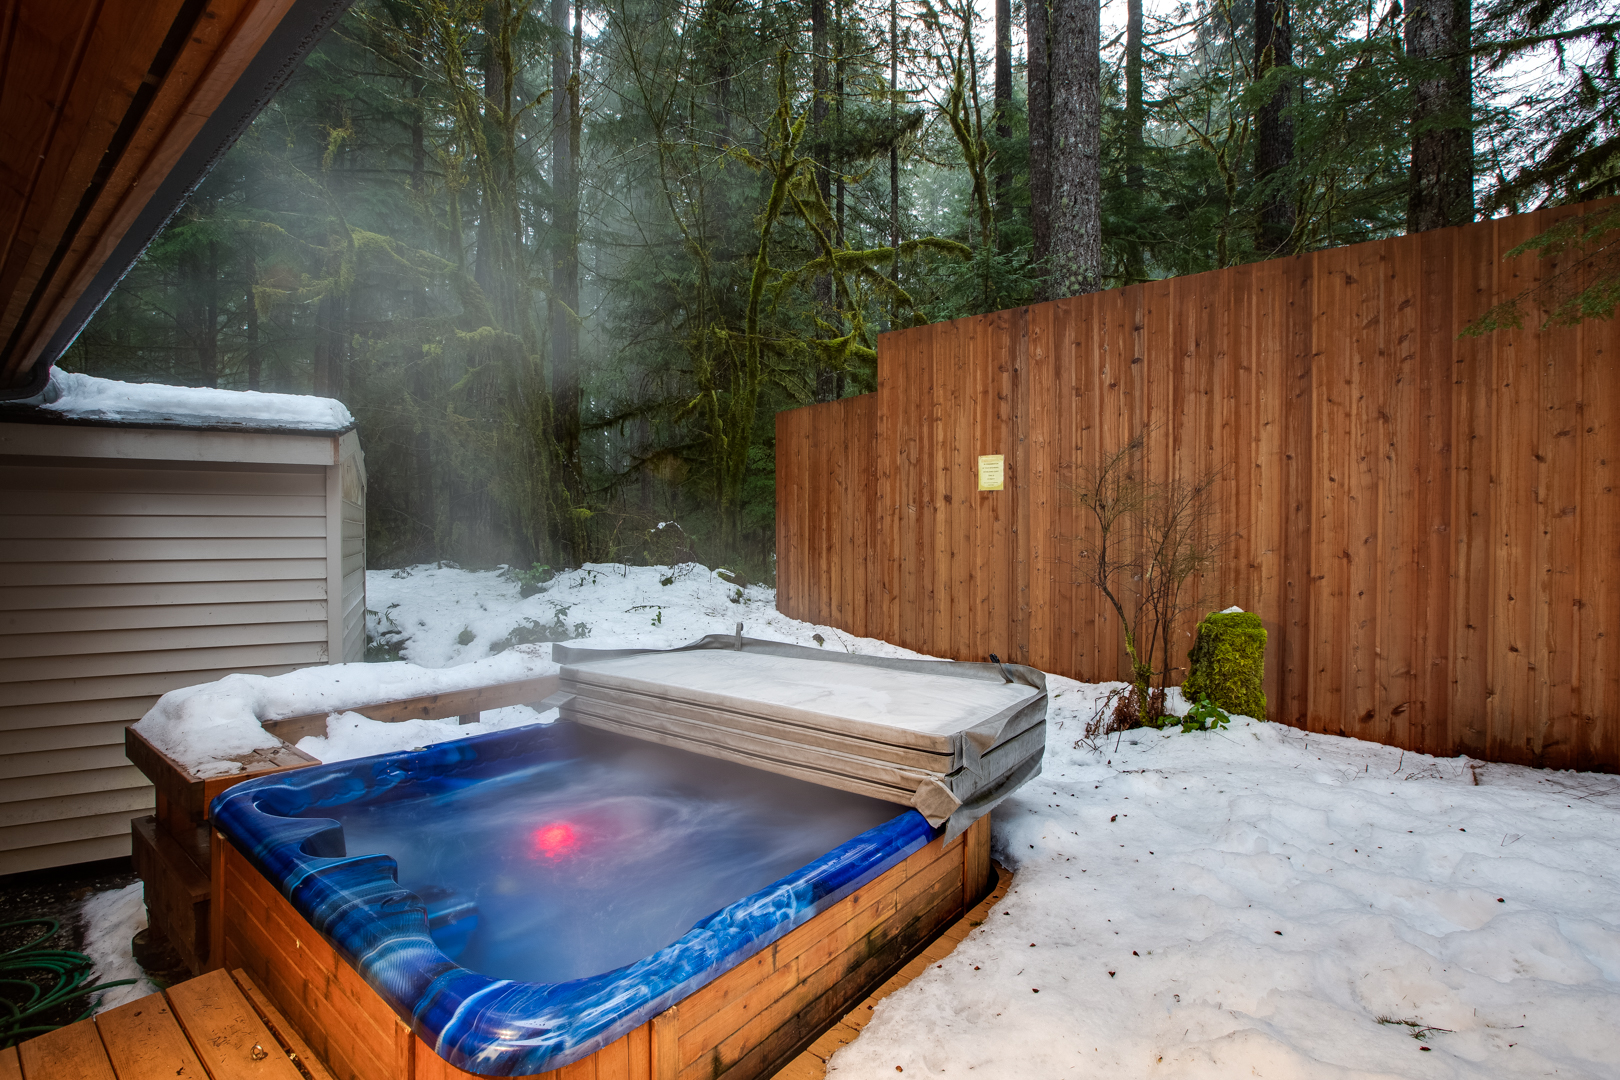 Hot tub during winter